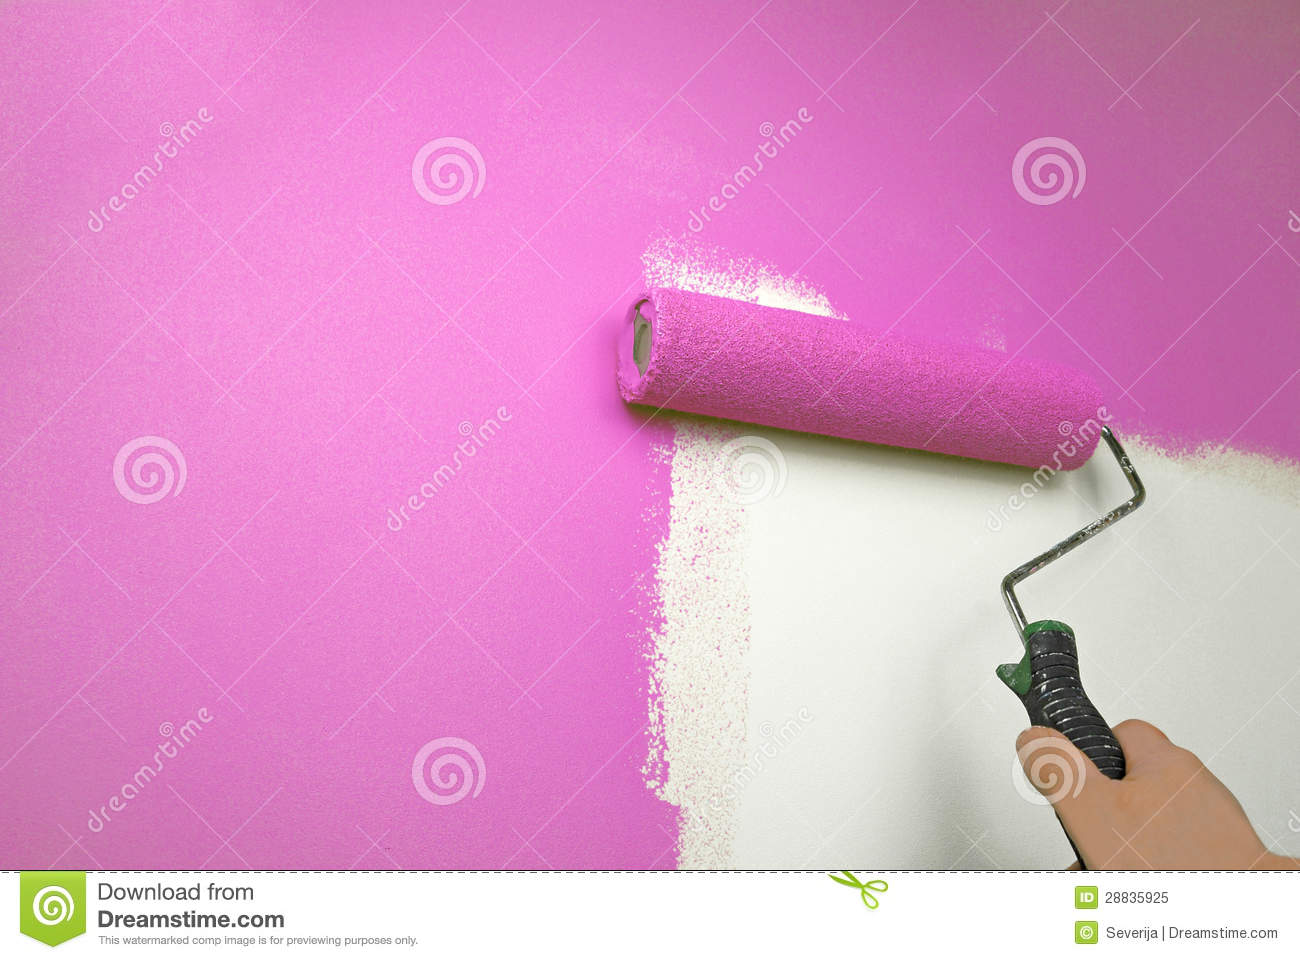 Hand Painting Wall Pink Stock Image Image Of House Handy 28835925